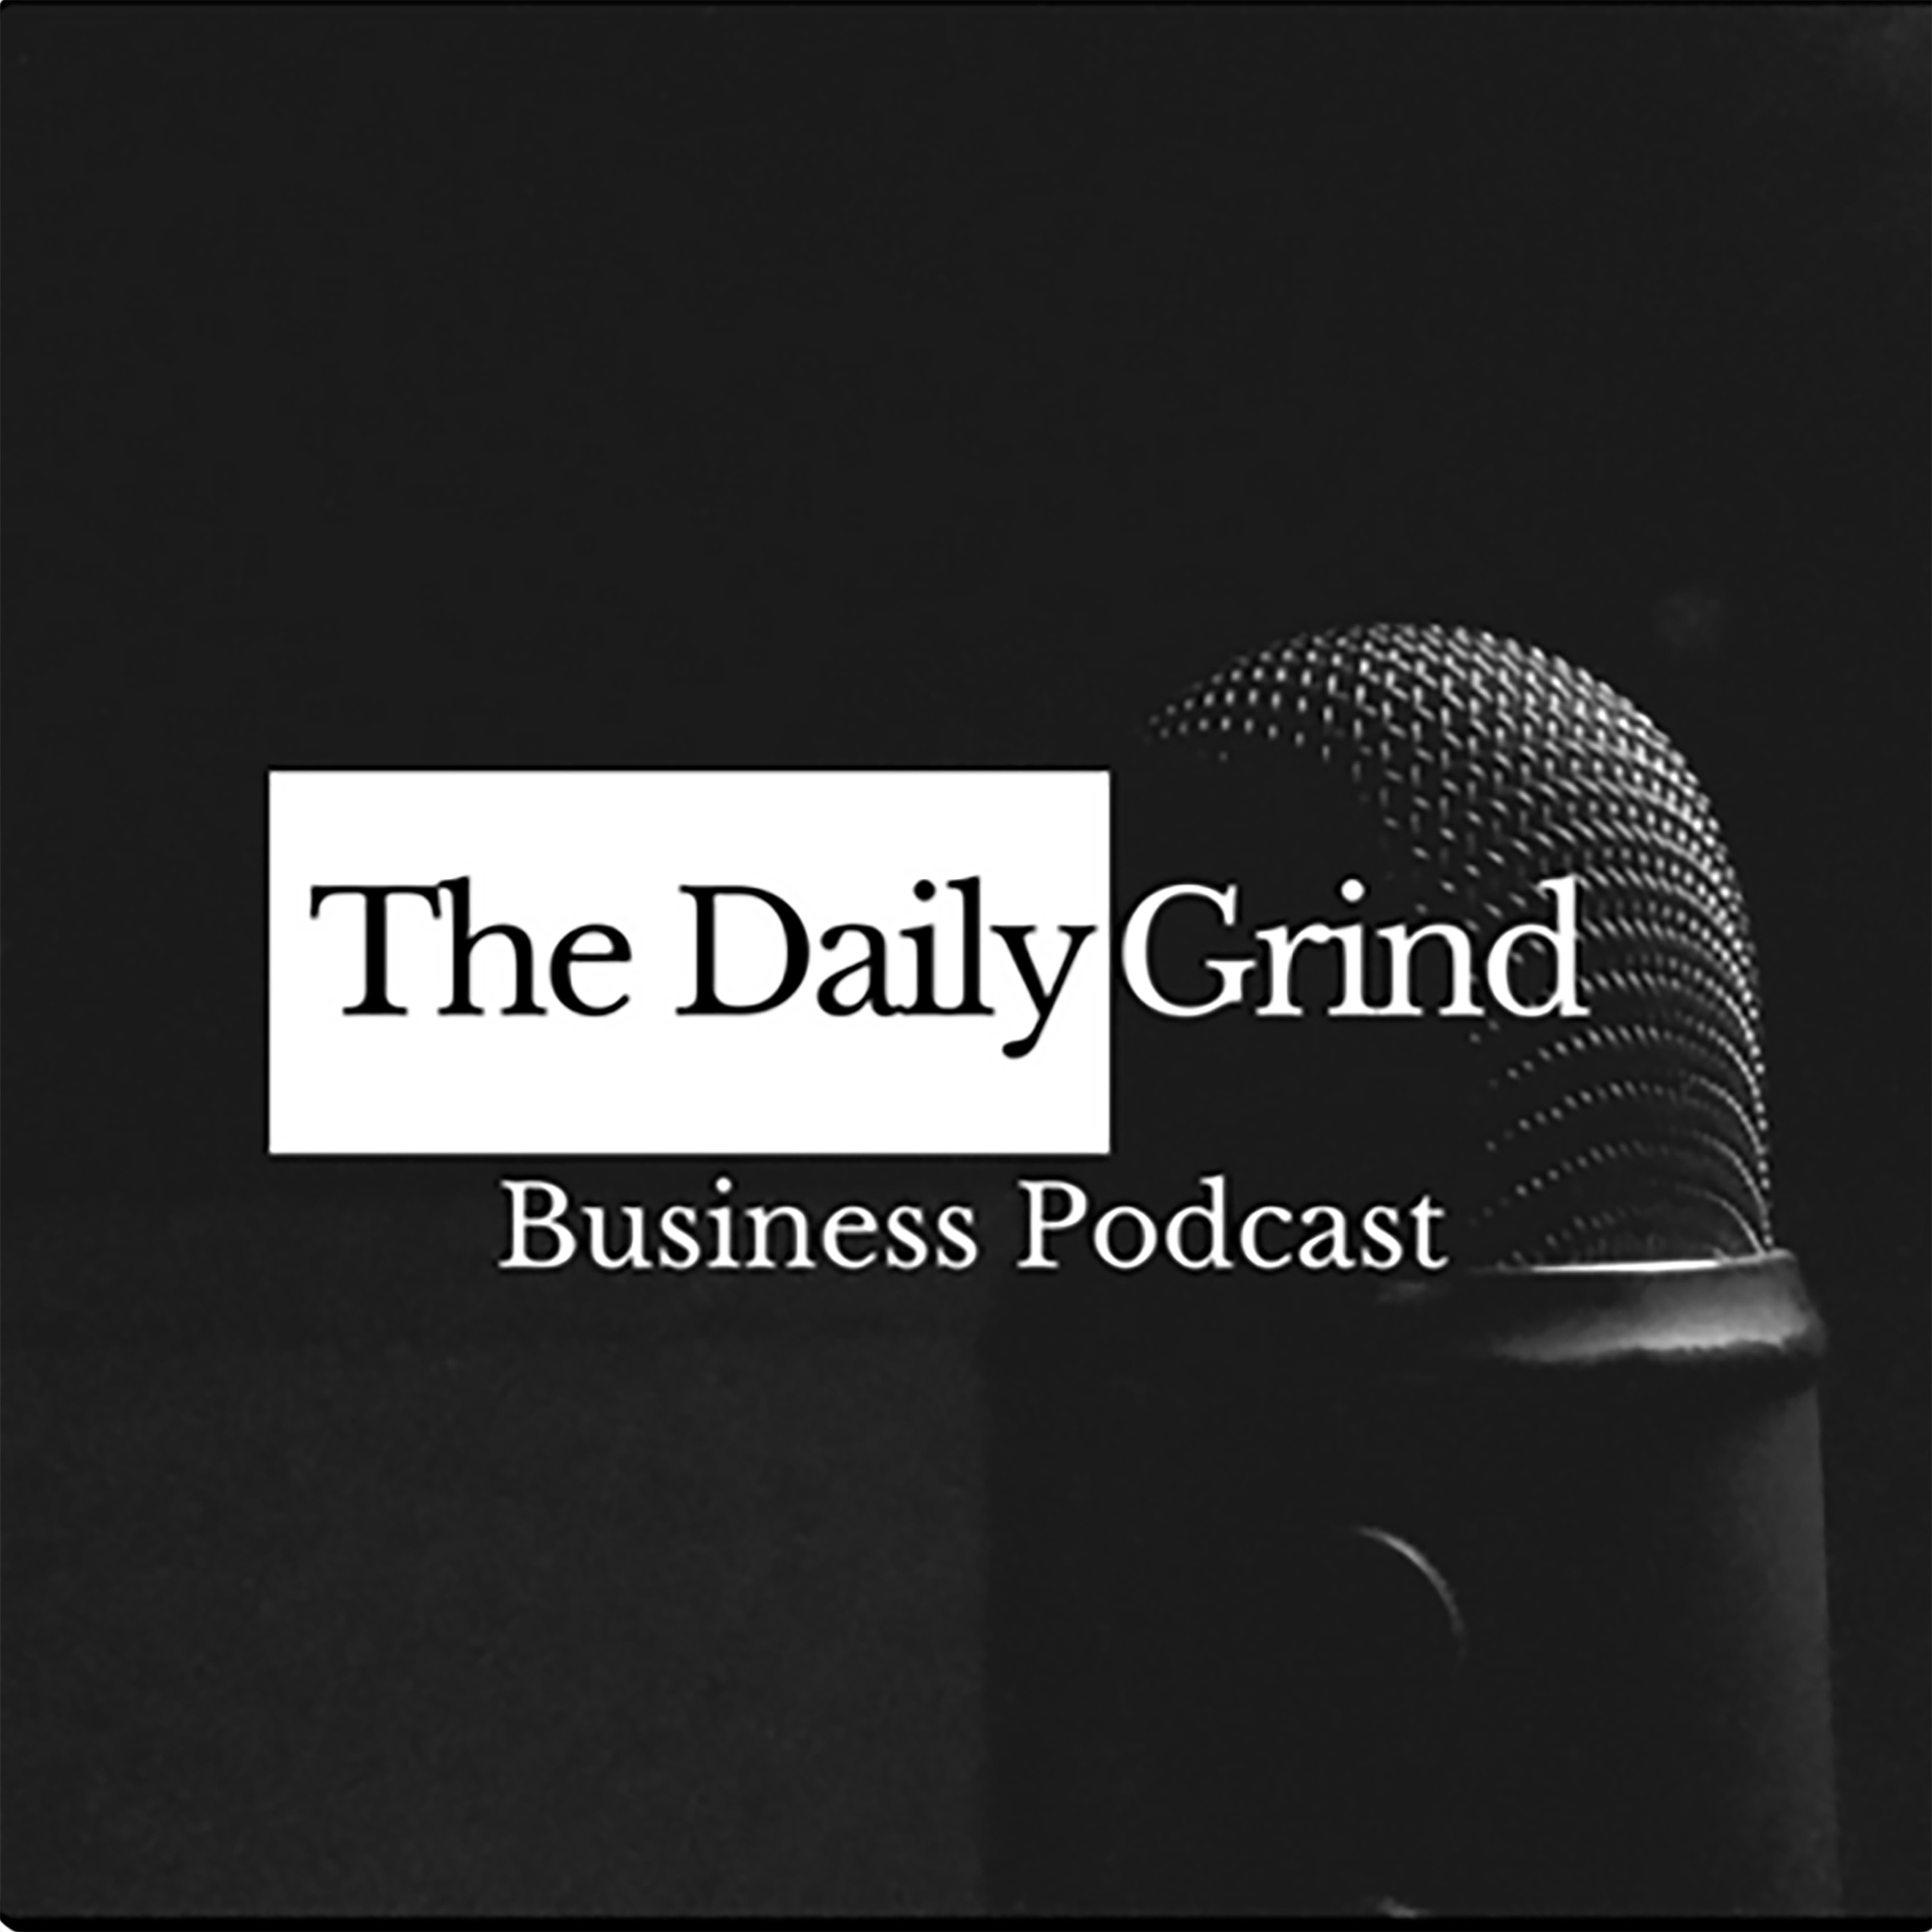 The Daily Grind Podcast